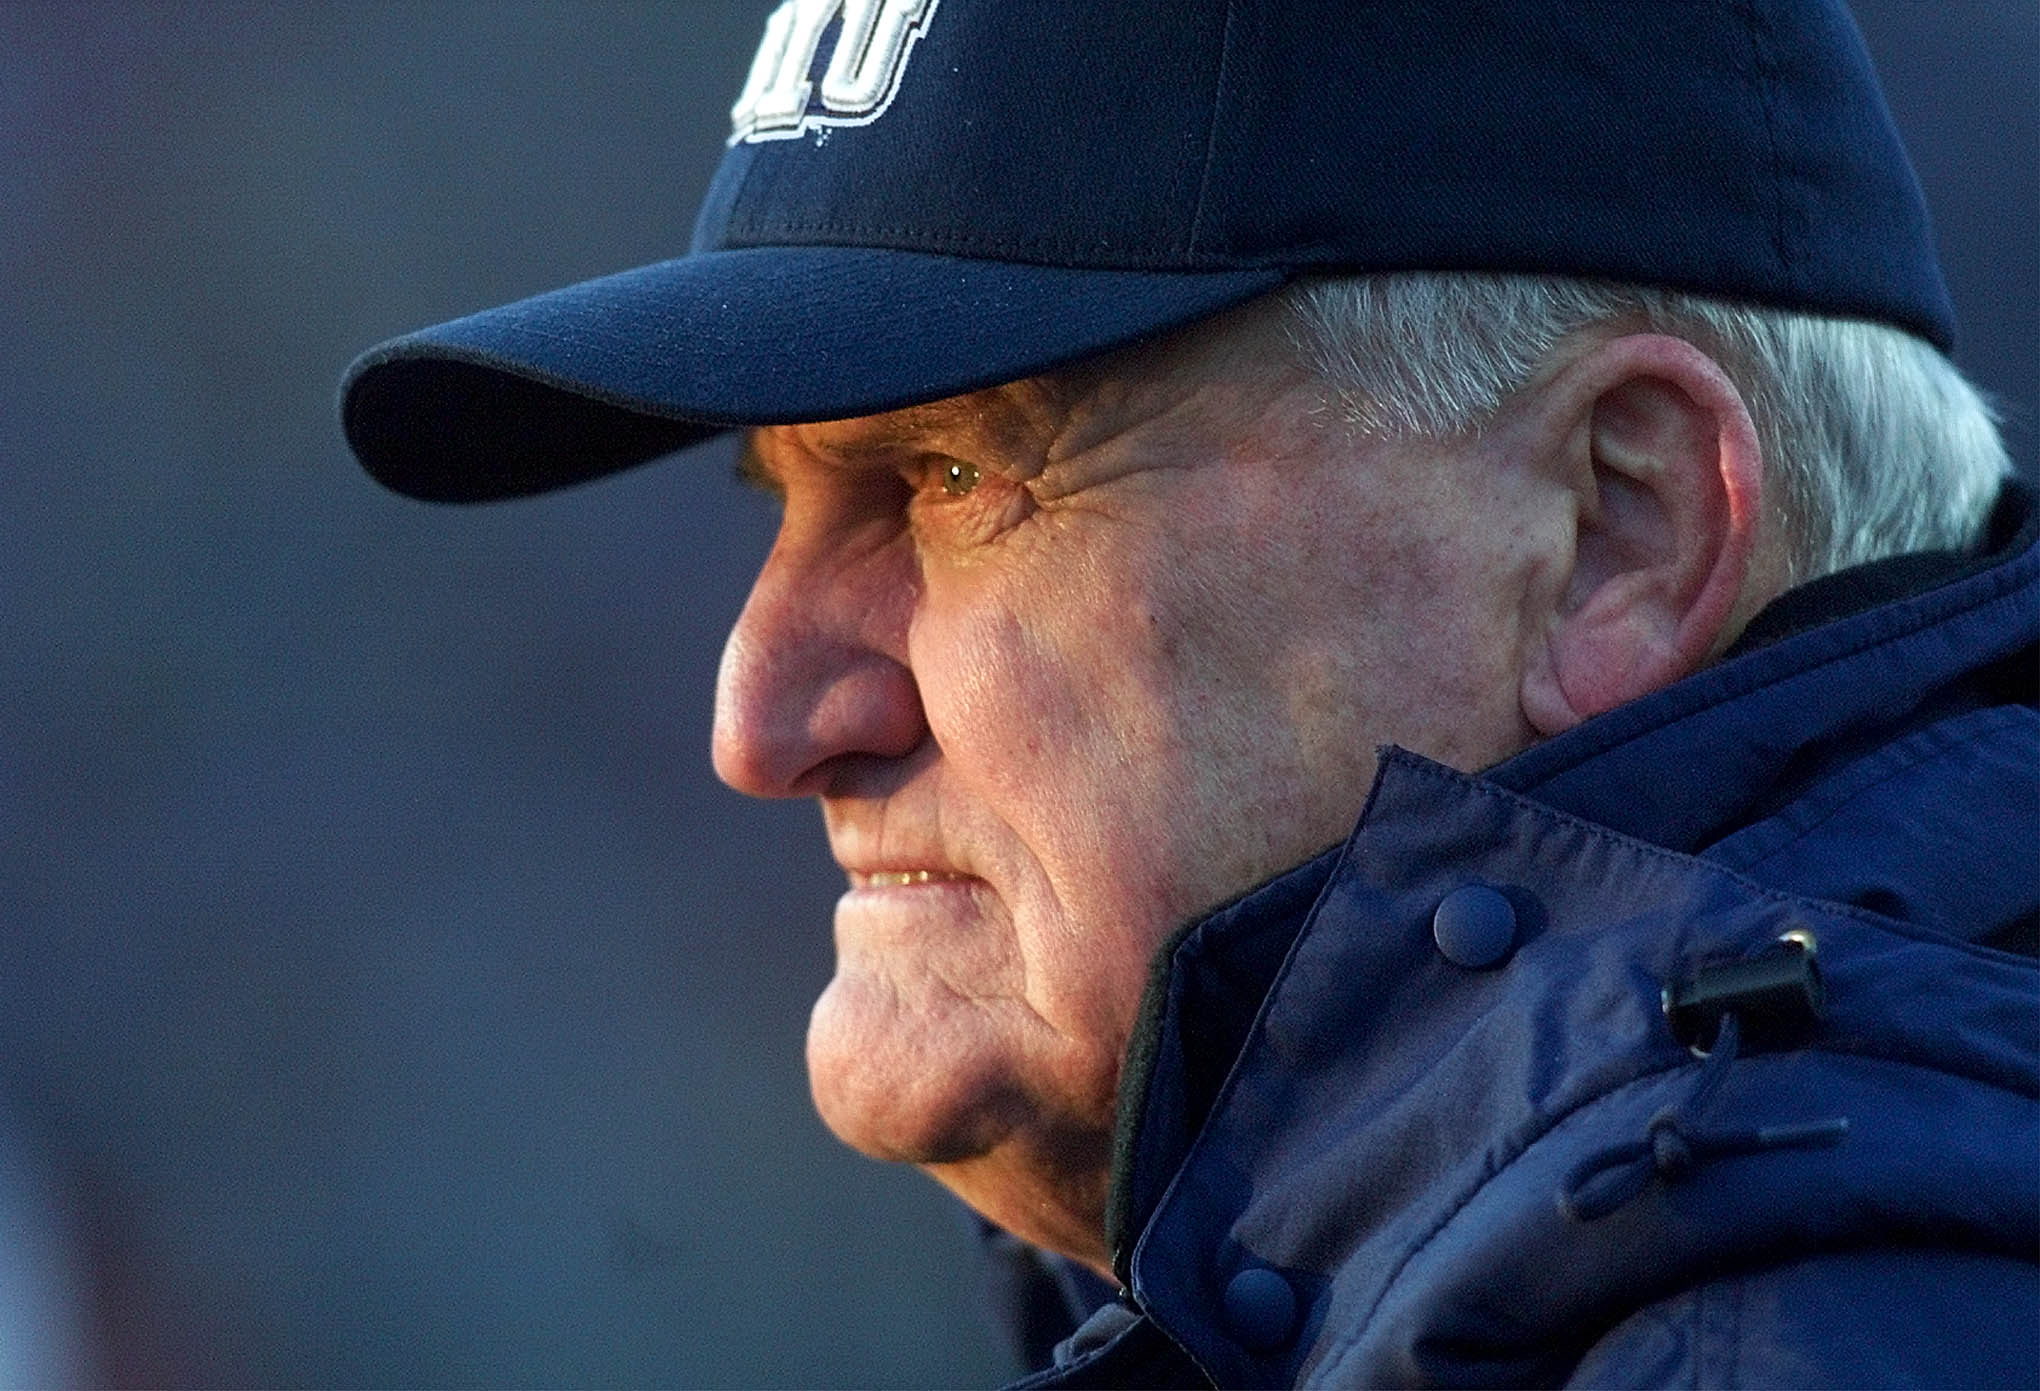 BYU Coach LaVell Edwards watches his team as the sun sets in his eyes during his final game at Cougar (now LaVell Edwards Stadium) last Saturday, Nov. 18, 2000.